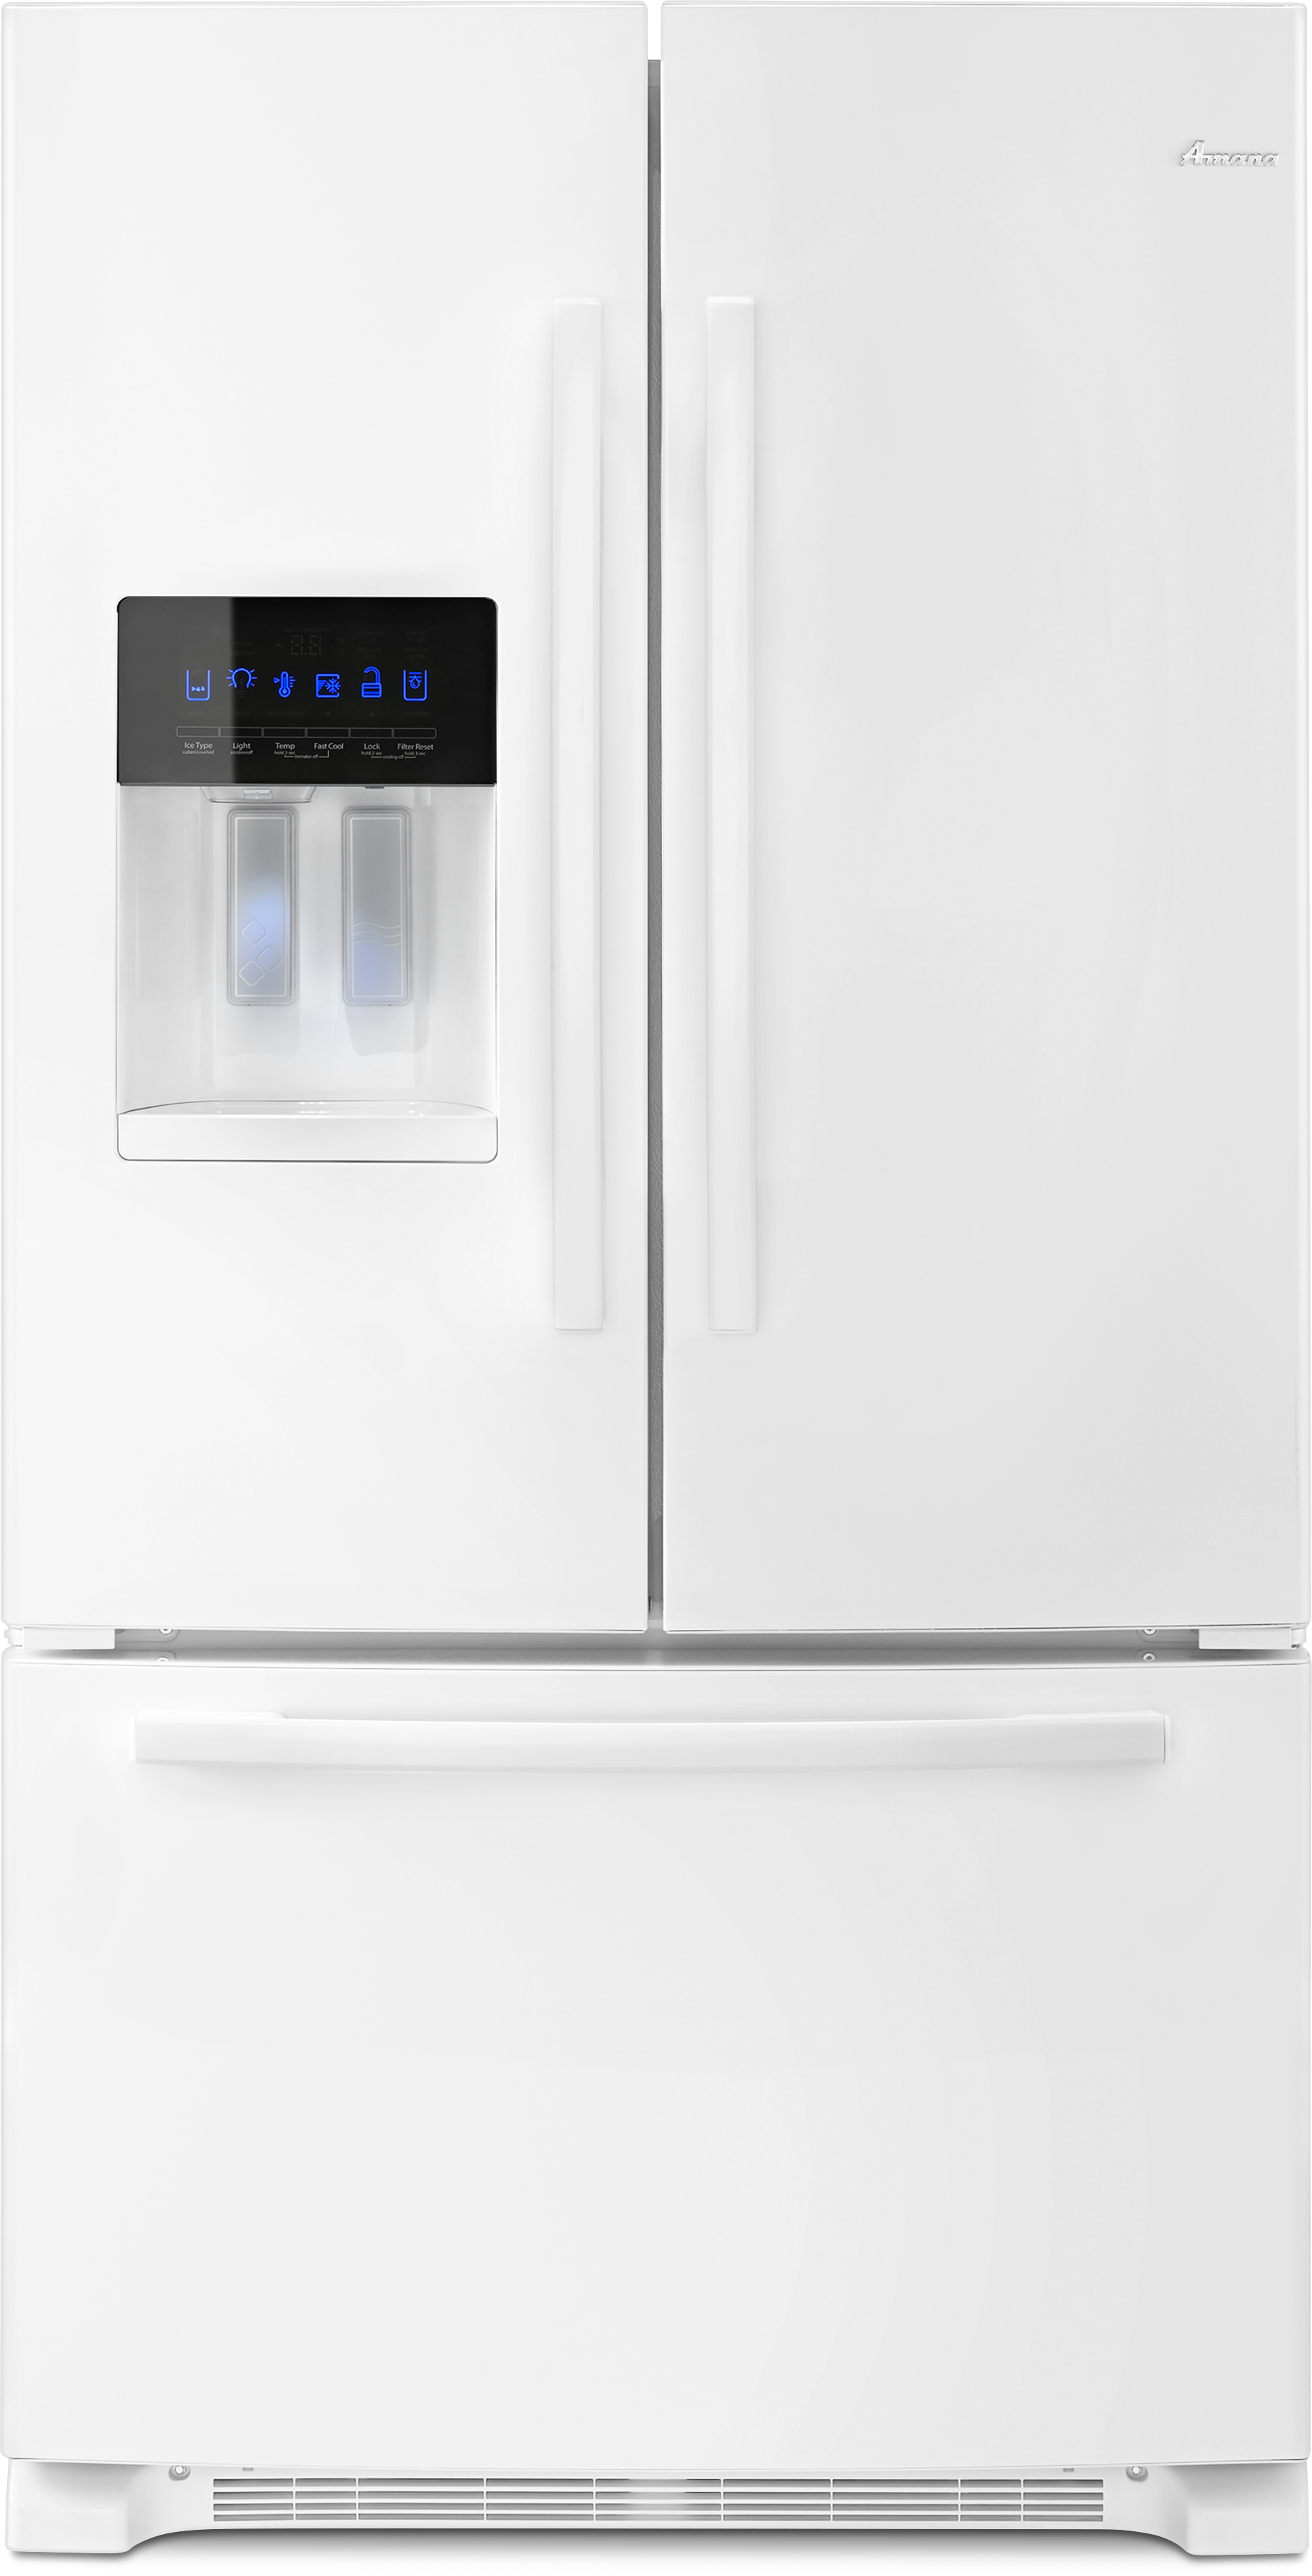 French door refrigerator ft french door bottom freezer refrigerator white afi2539erw rubansaba